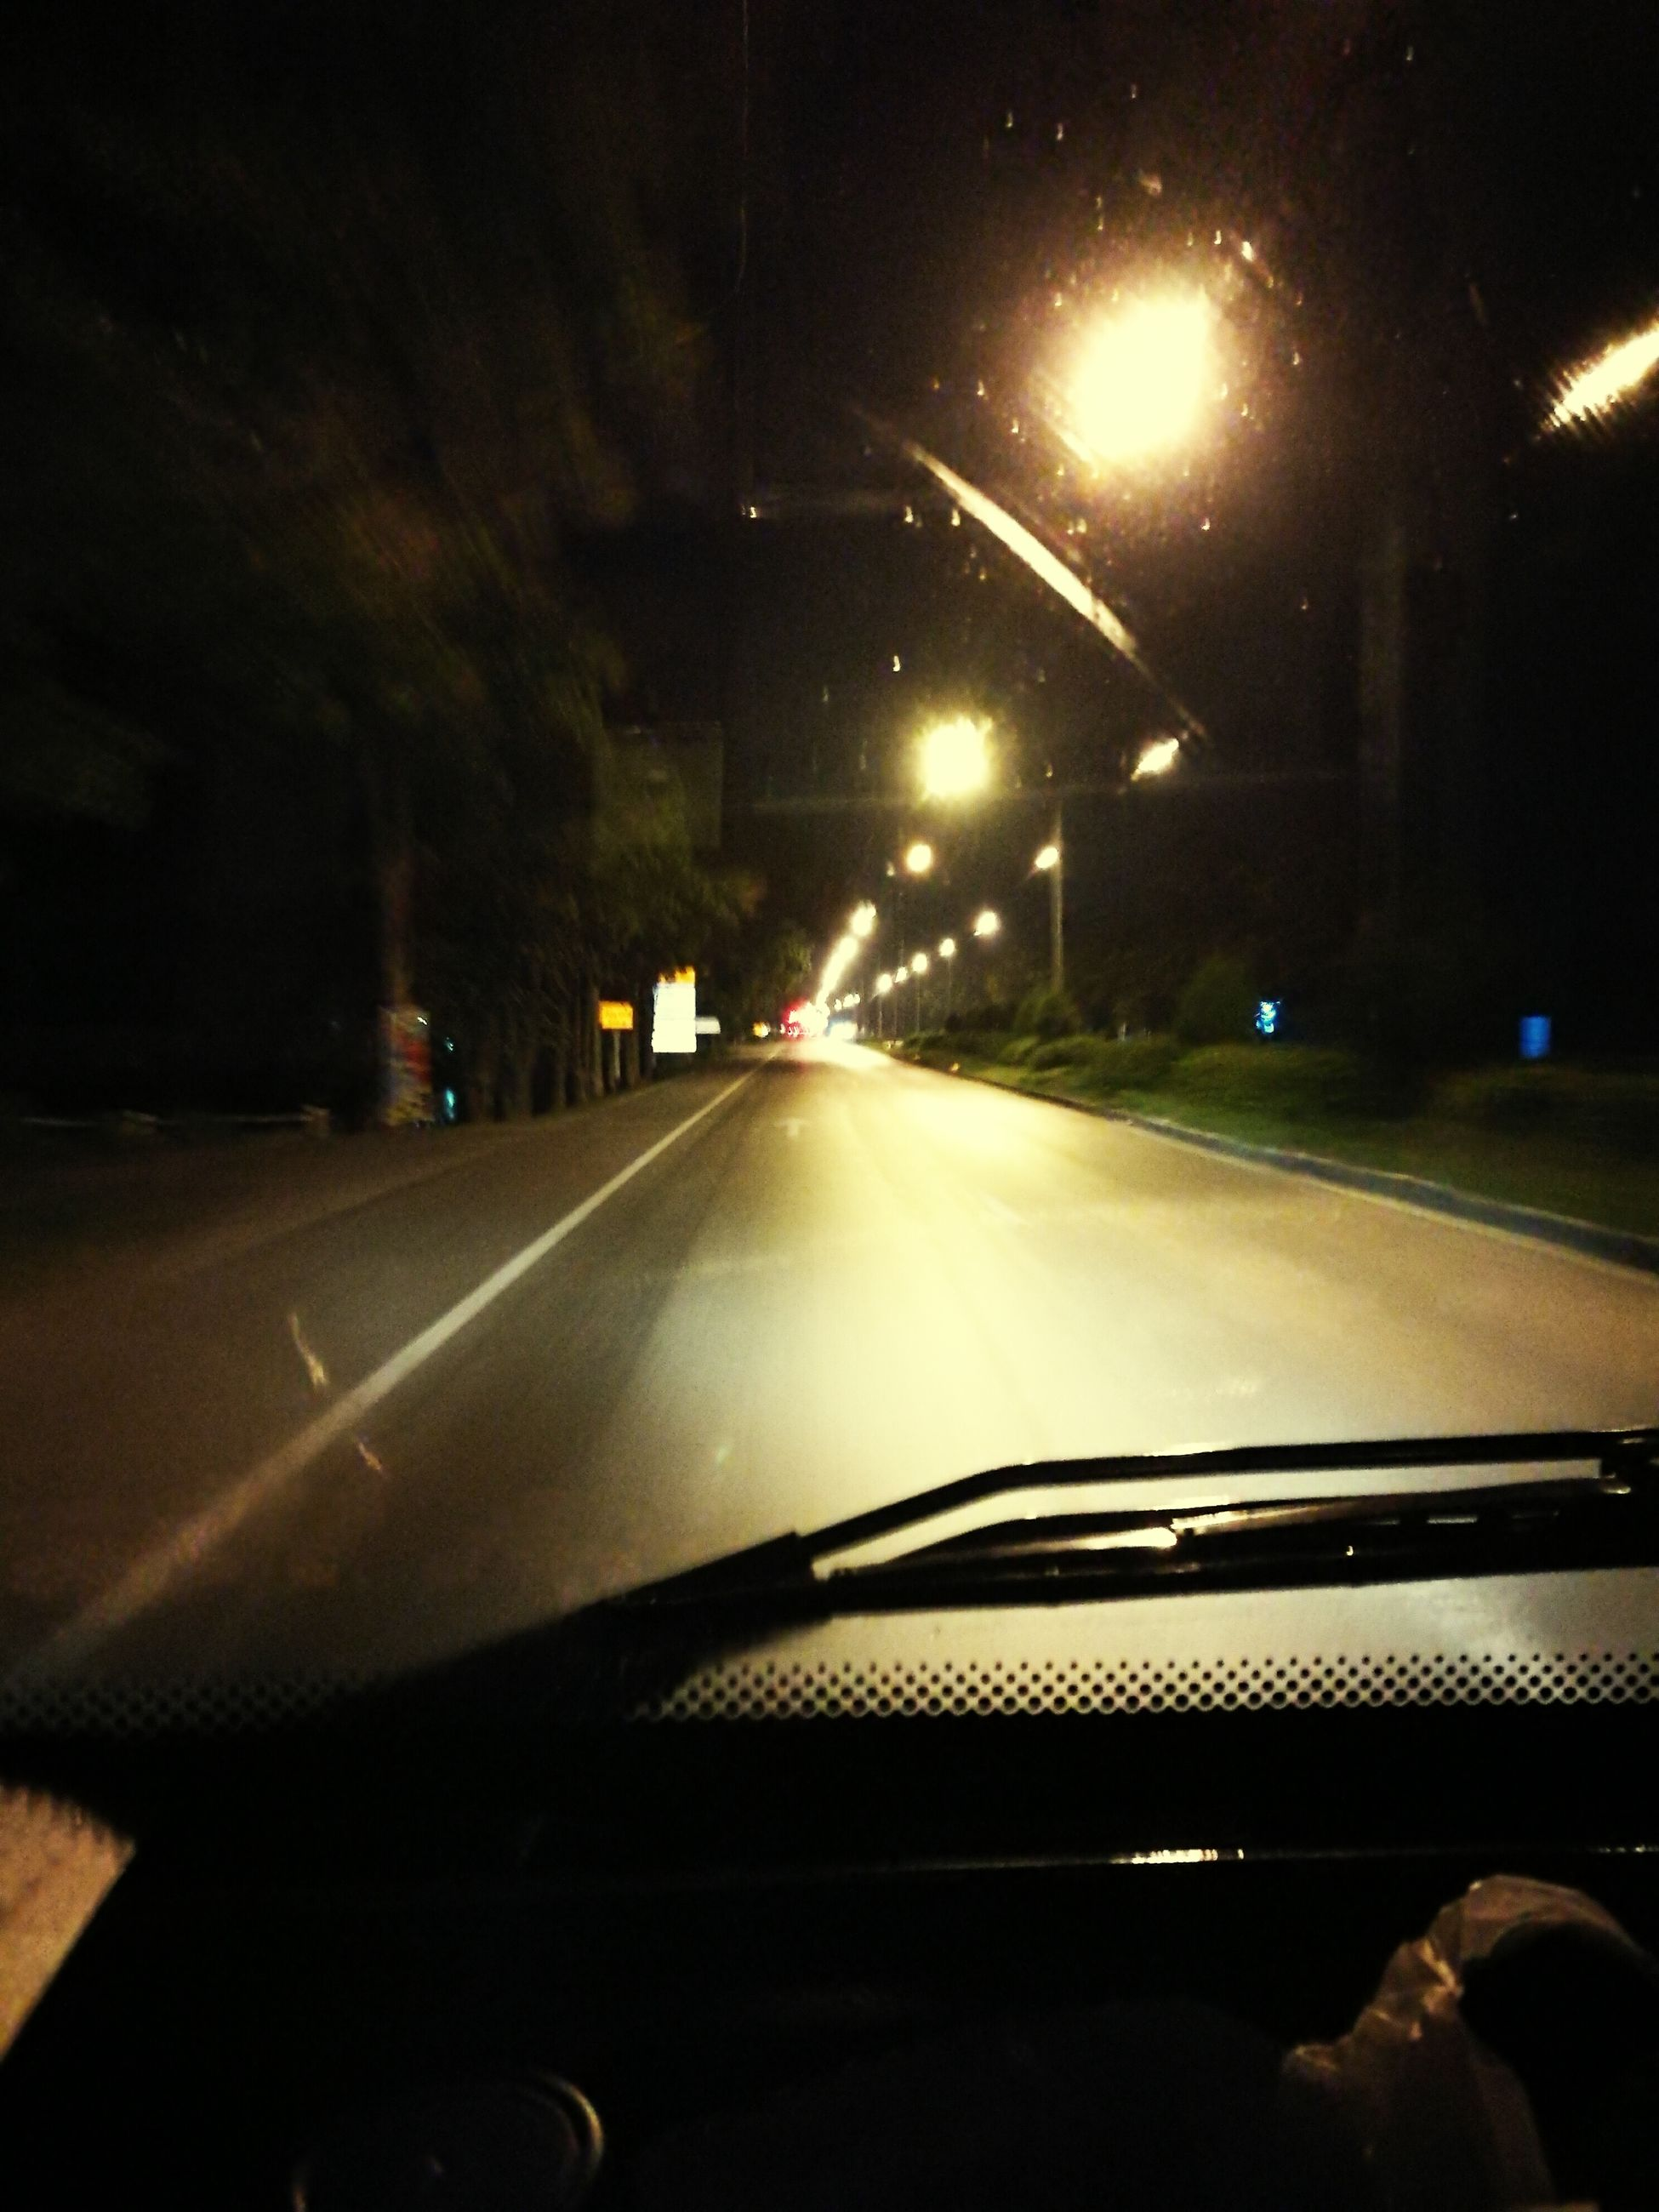 transportation, car, land vehicle, mode of transport, windshield, road, car interior, illuminated, night, vehicle interior, transparent, part of, street, glass - material, car point of view, the way forward, outdoors, windscreen, diminishing perspective, long, journey, no people